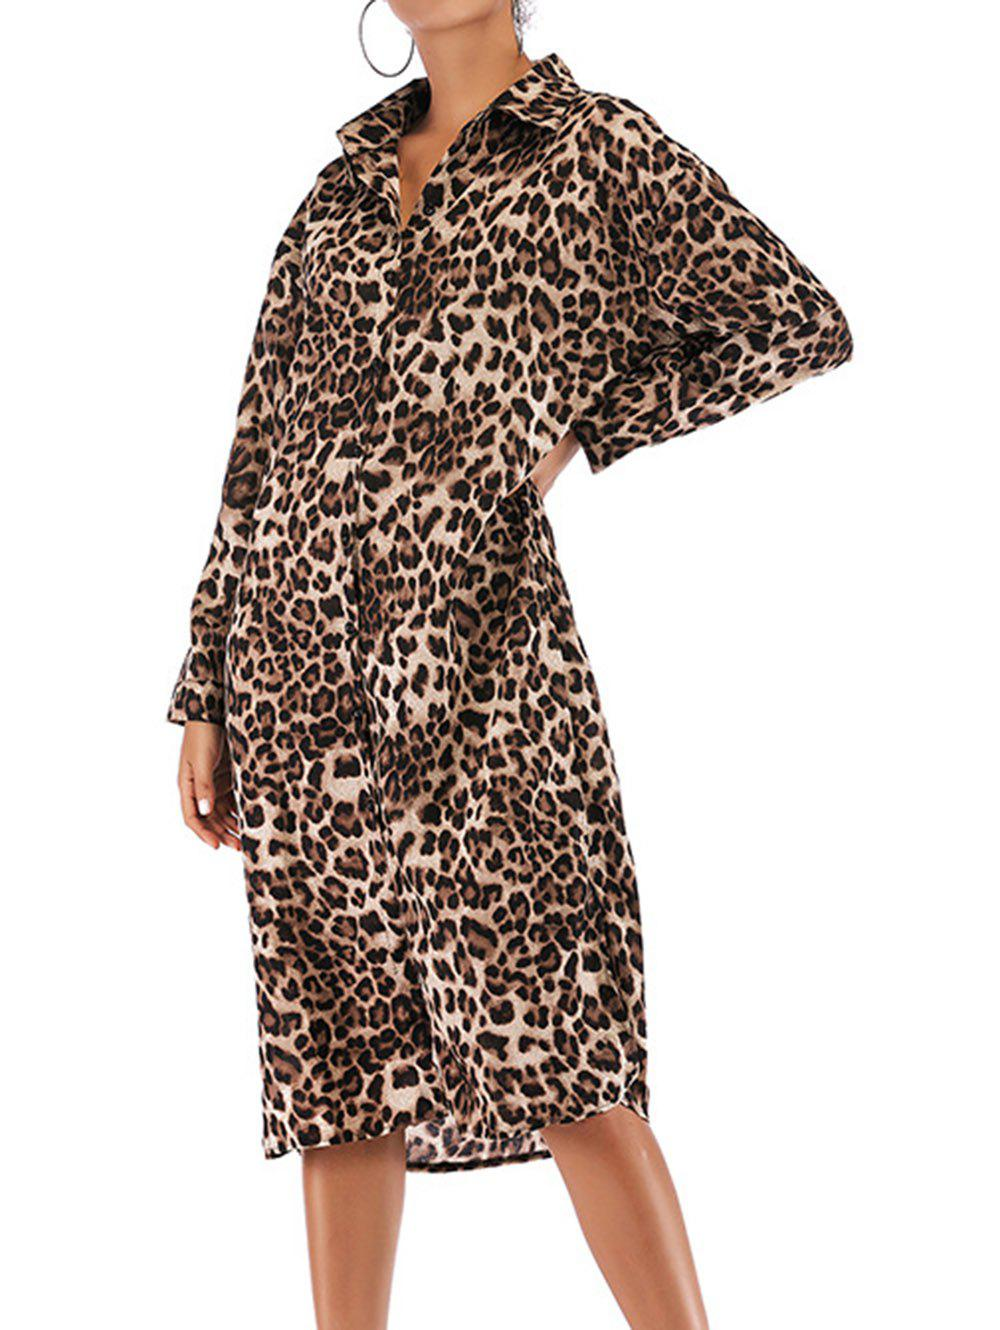 Shop Women Leopard Print Dresses Long Sleeve Knee Length Animal Print Tunic Mini Dress with Belt